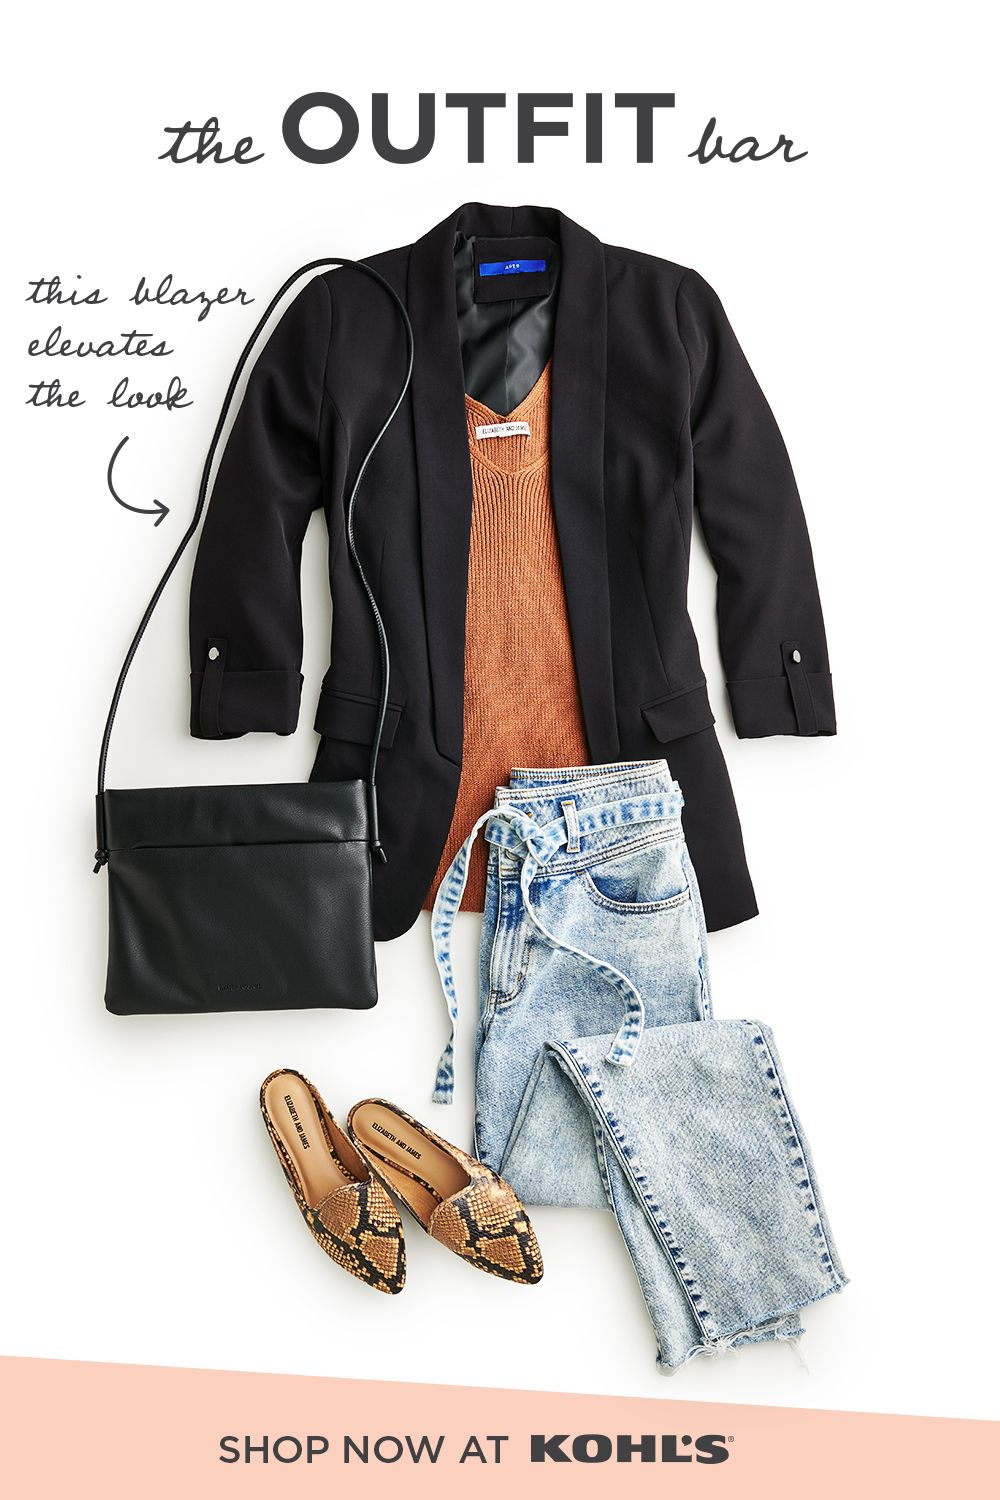 Photo of Neue Looks von The Outfit Bar bei Kohls.com.